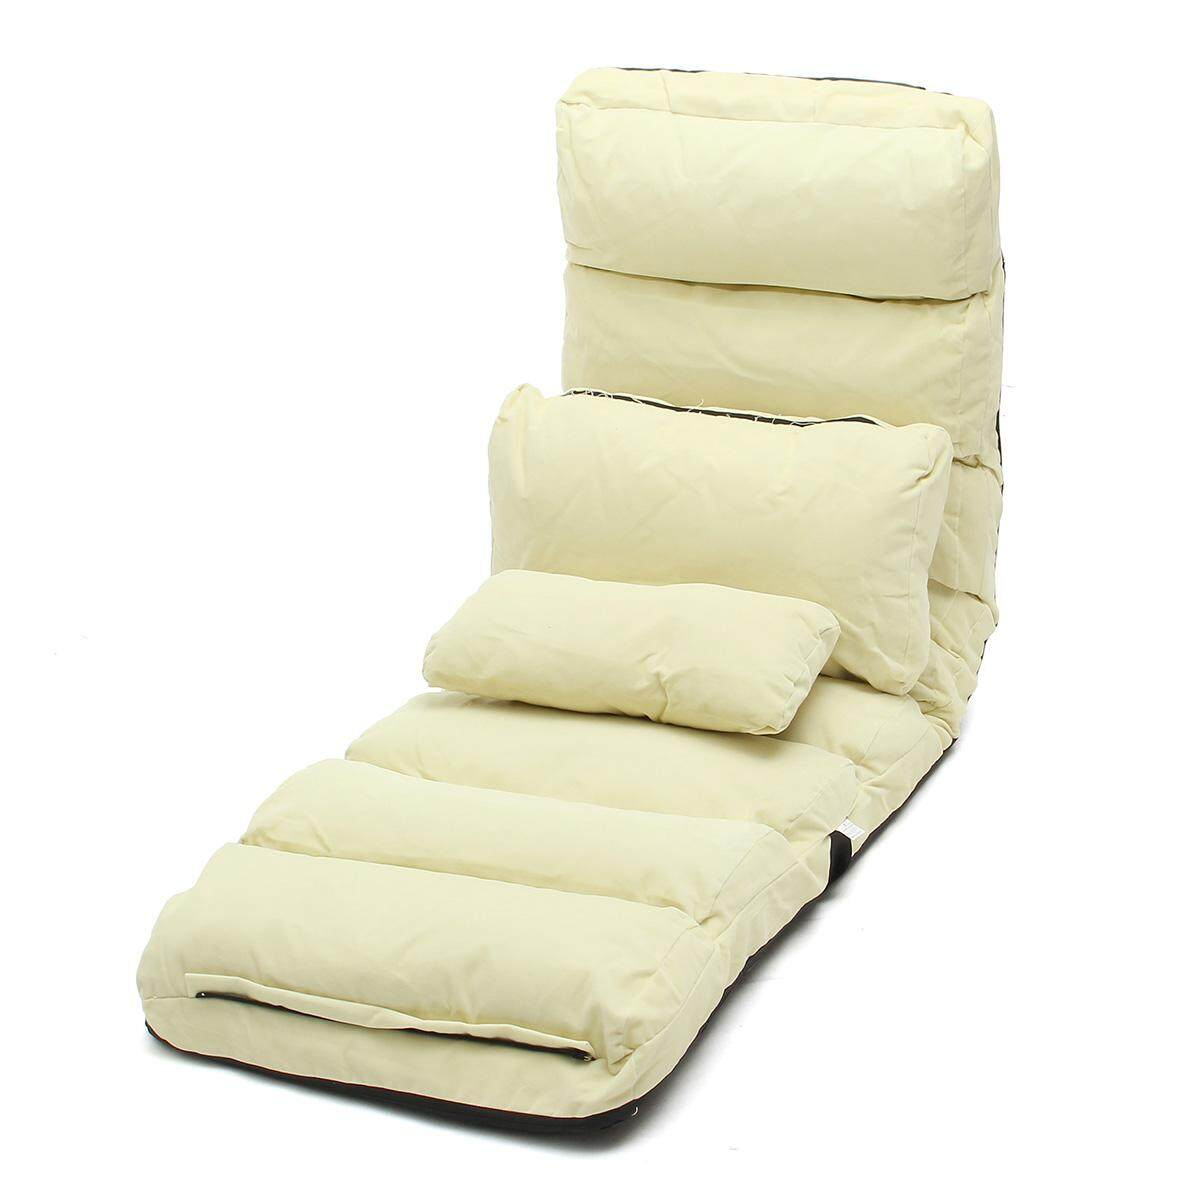 Lounge Sofa Bed Floor Recliner Folding Chaise Chair Adjustable Foldable AU Home Beige (Lengthen Size) - intl